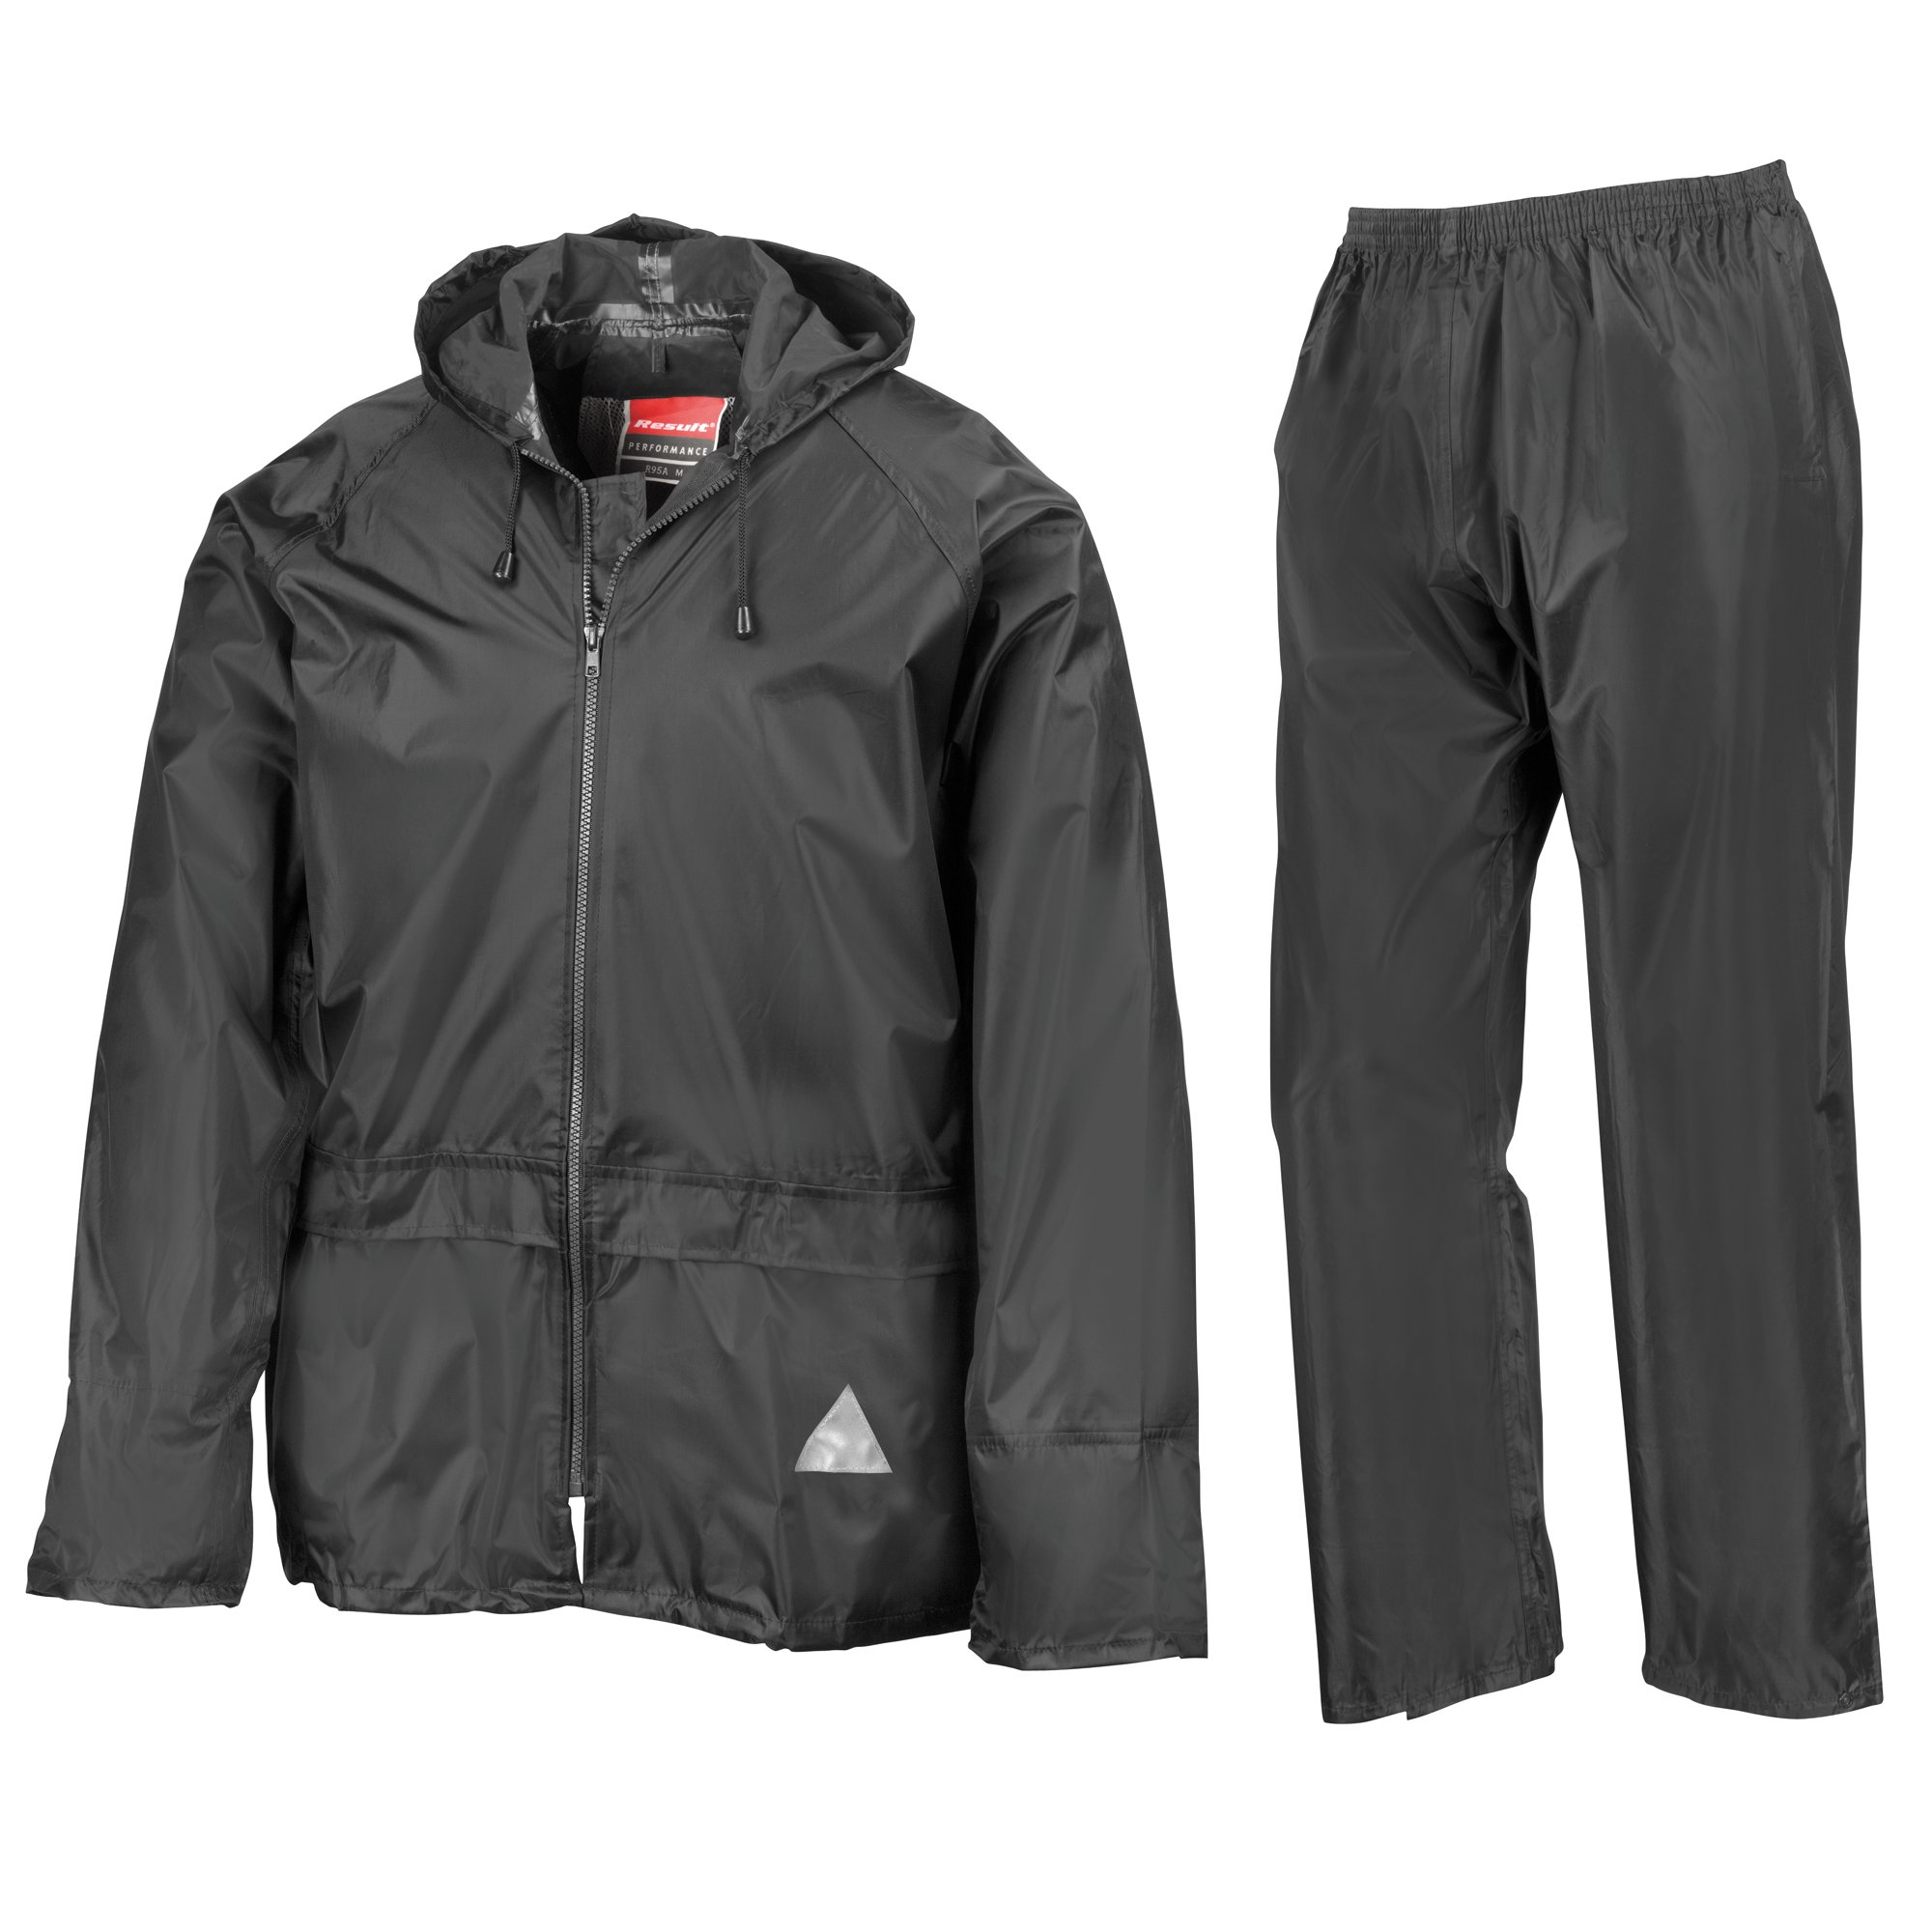 Result Mens Heavyweight Waterproof Rain Suit (Jacket & Trouser Suit) (L) (Black)